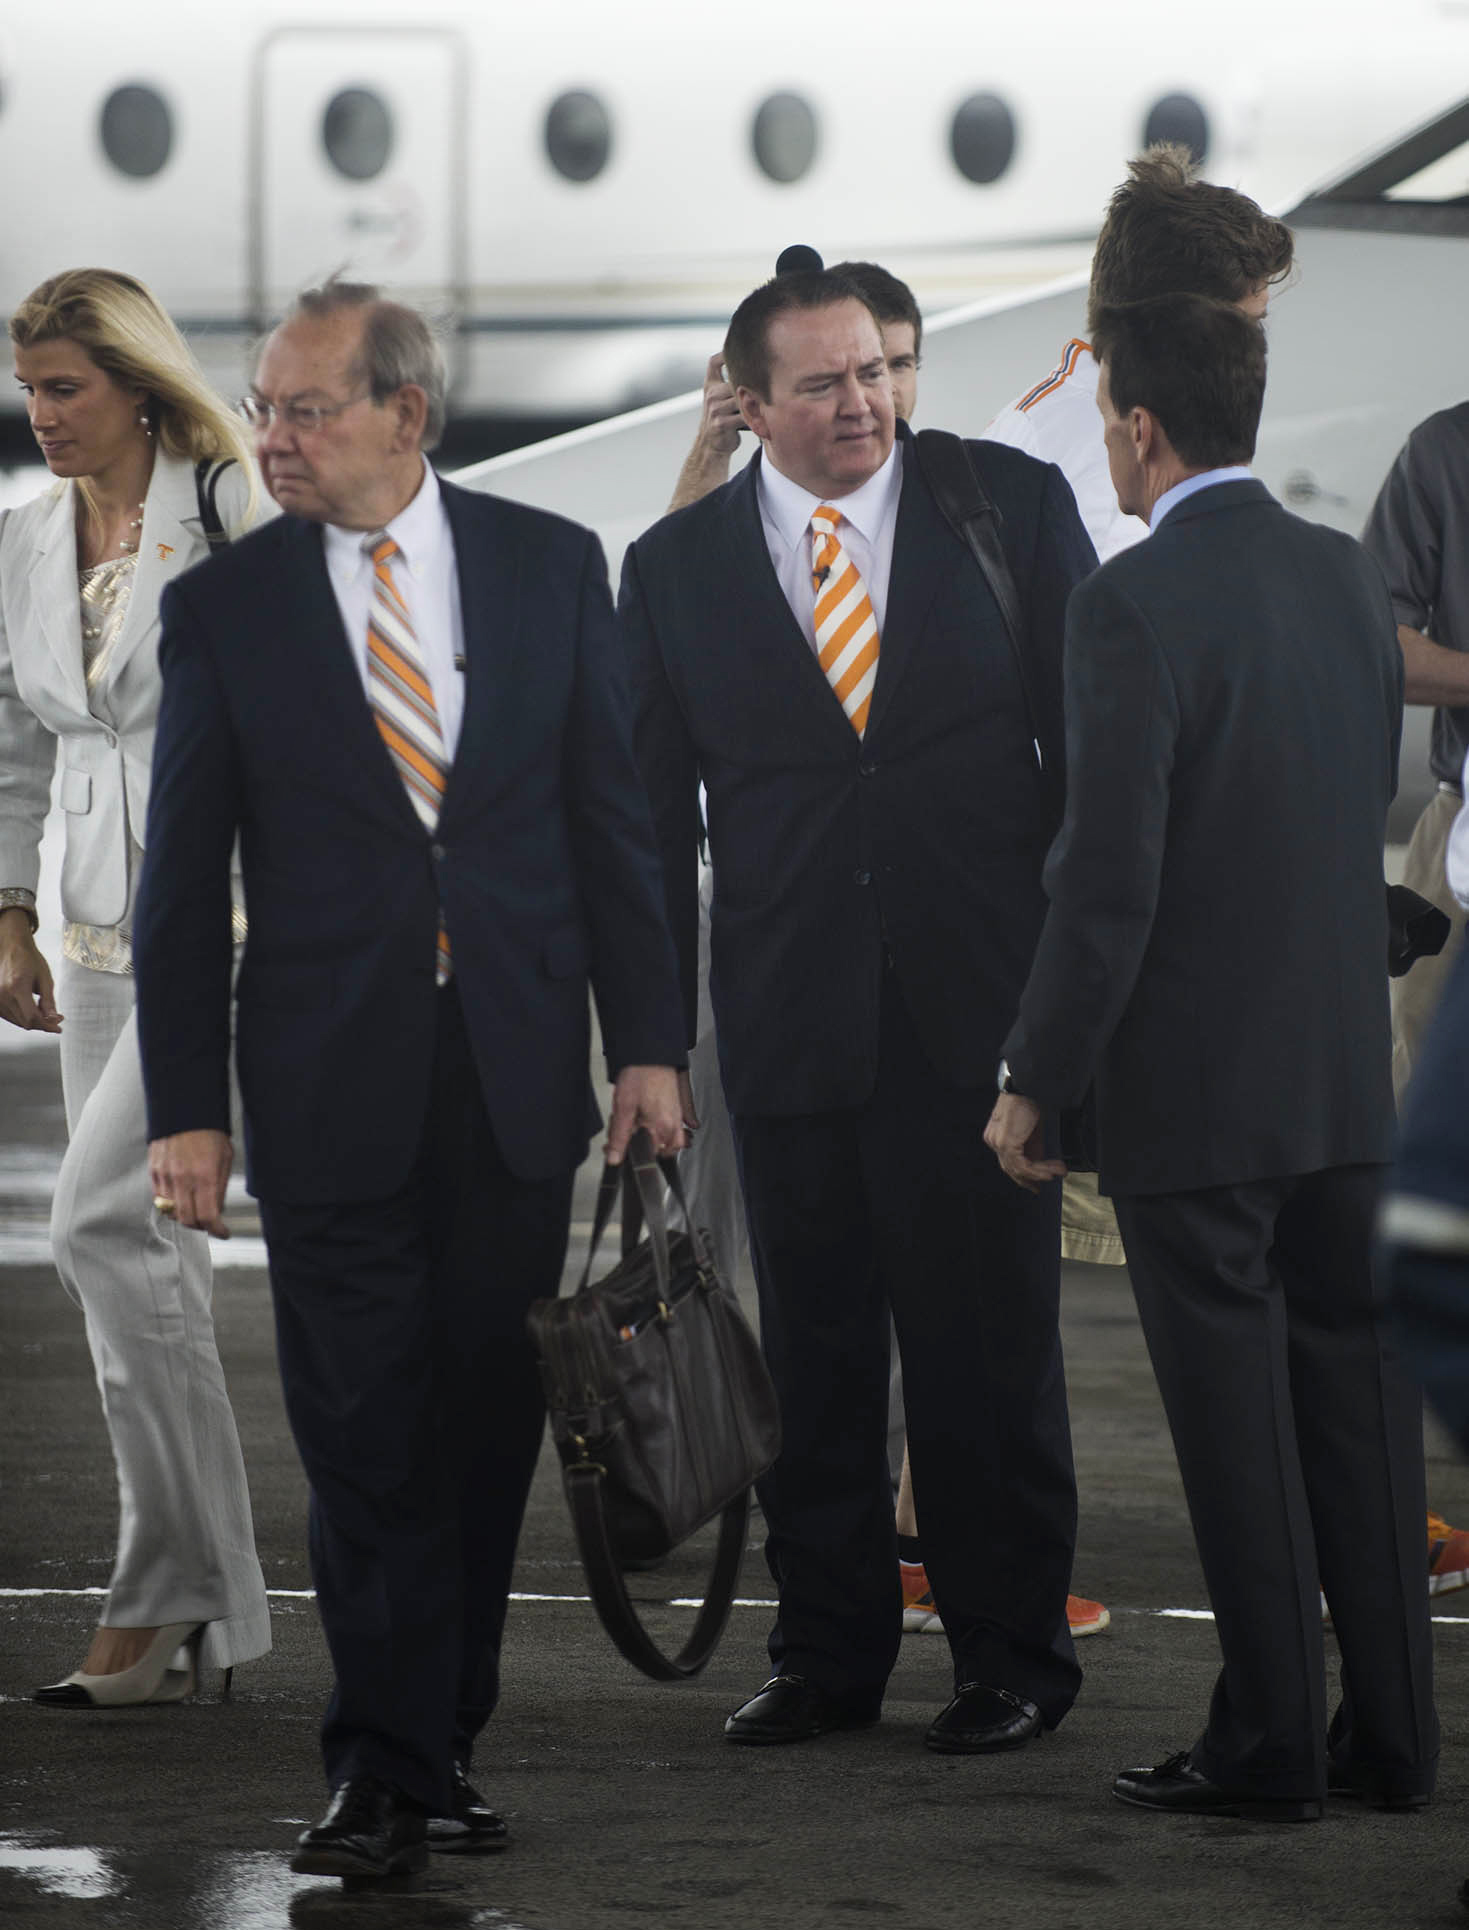 Tennessee men's basketball coach Donnie Tyndall, center, talks to athletic director Dave Hart after Tyndall arrived Tuesday, April 22, 2014, in Knoxville, Tenn. At left are Tyndall's fiancee, Nikki Young, and Tennessee chancellor Jimmy Cheek. The former Southern Mississippi coach succeeds Cuonzo Martin, who resigned last week to take the coaching job at California